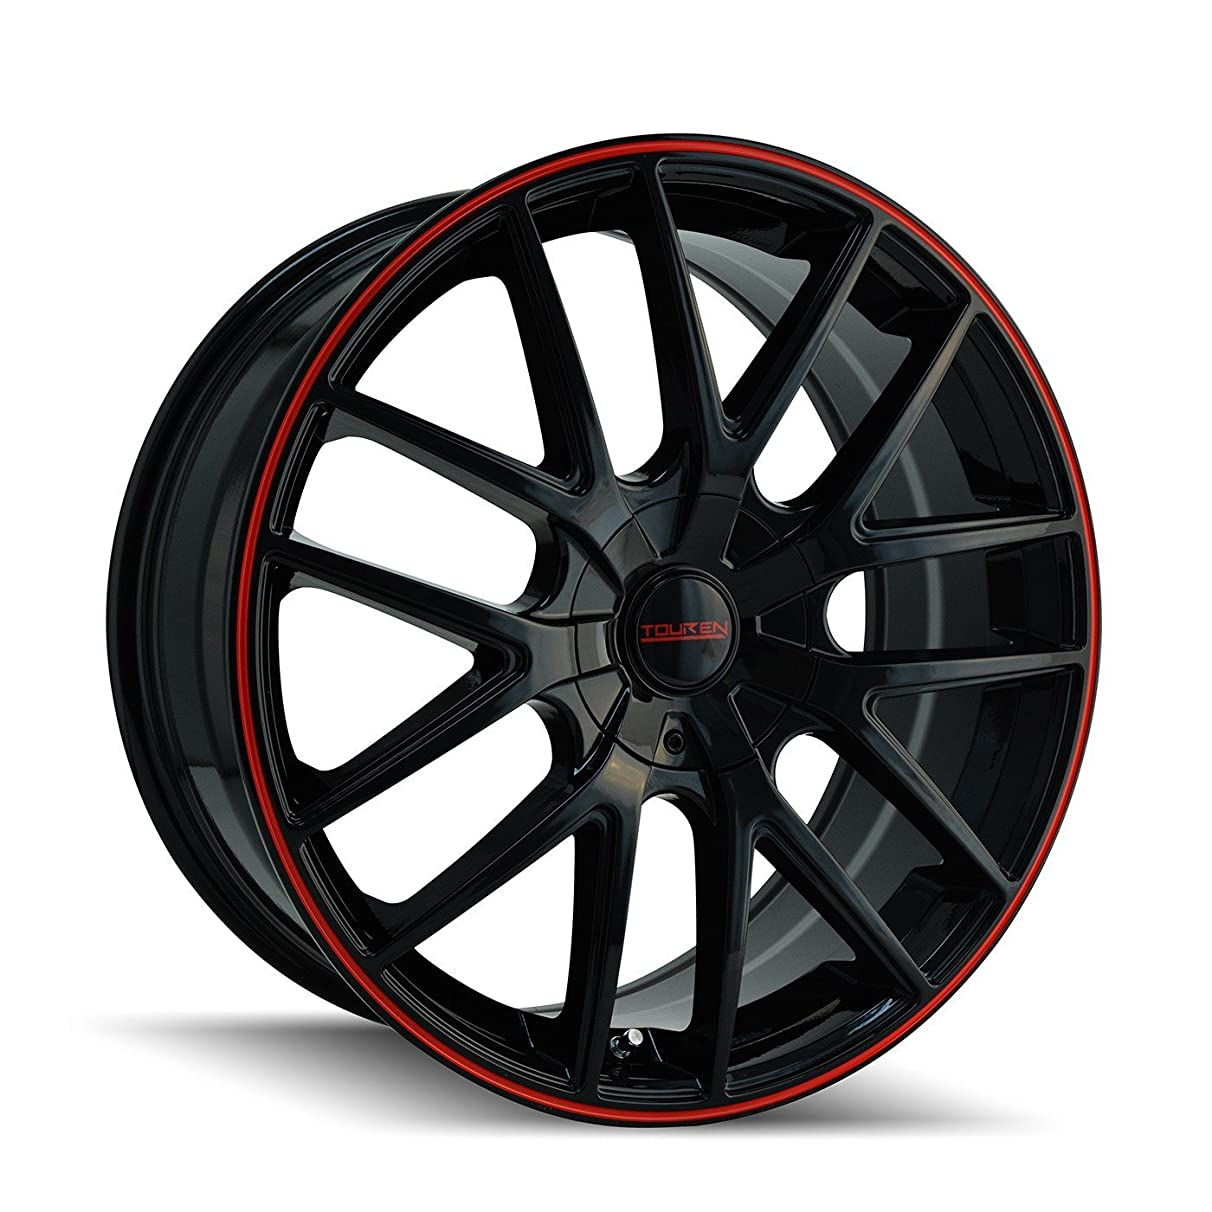 Touren TR60 3260 Wheel with Black Finish with Red Ring (17x7.5